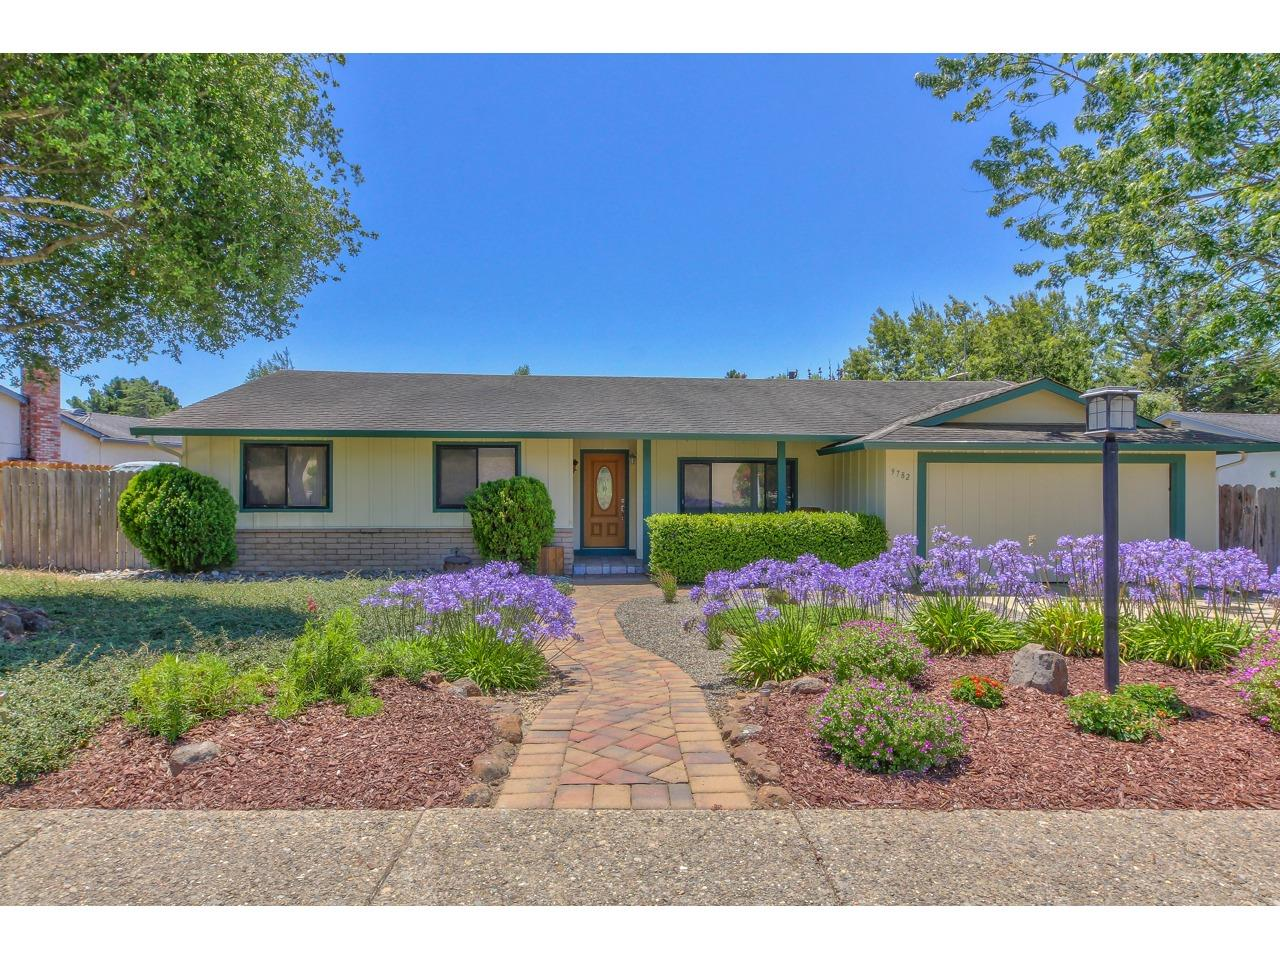 Detail Gallery Image 1 of 42 For 9782 Trefoil Pl, Salinas, CA 93907 - 3 Beds   2 Baths